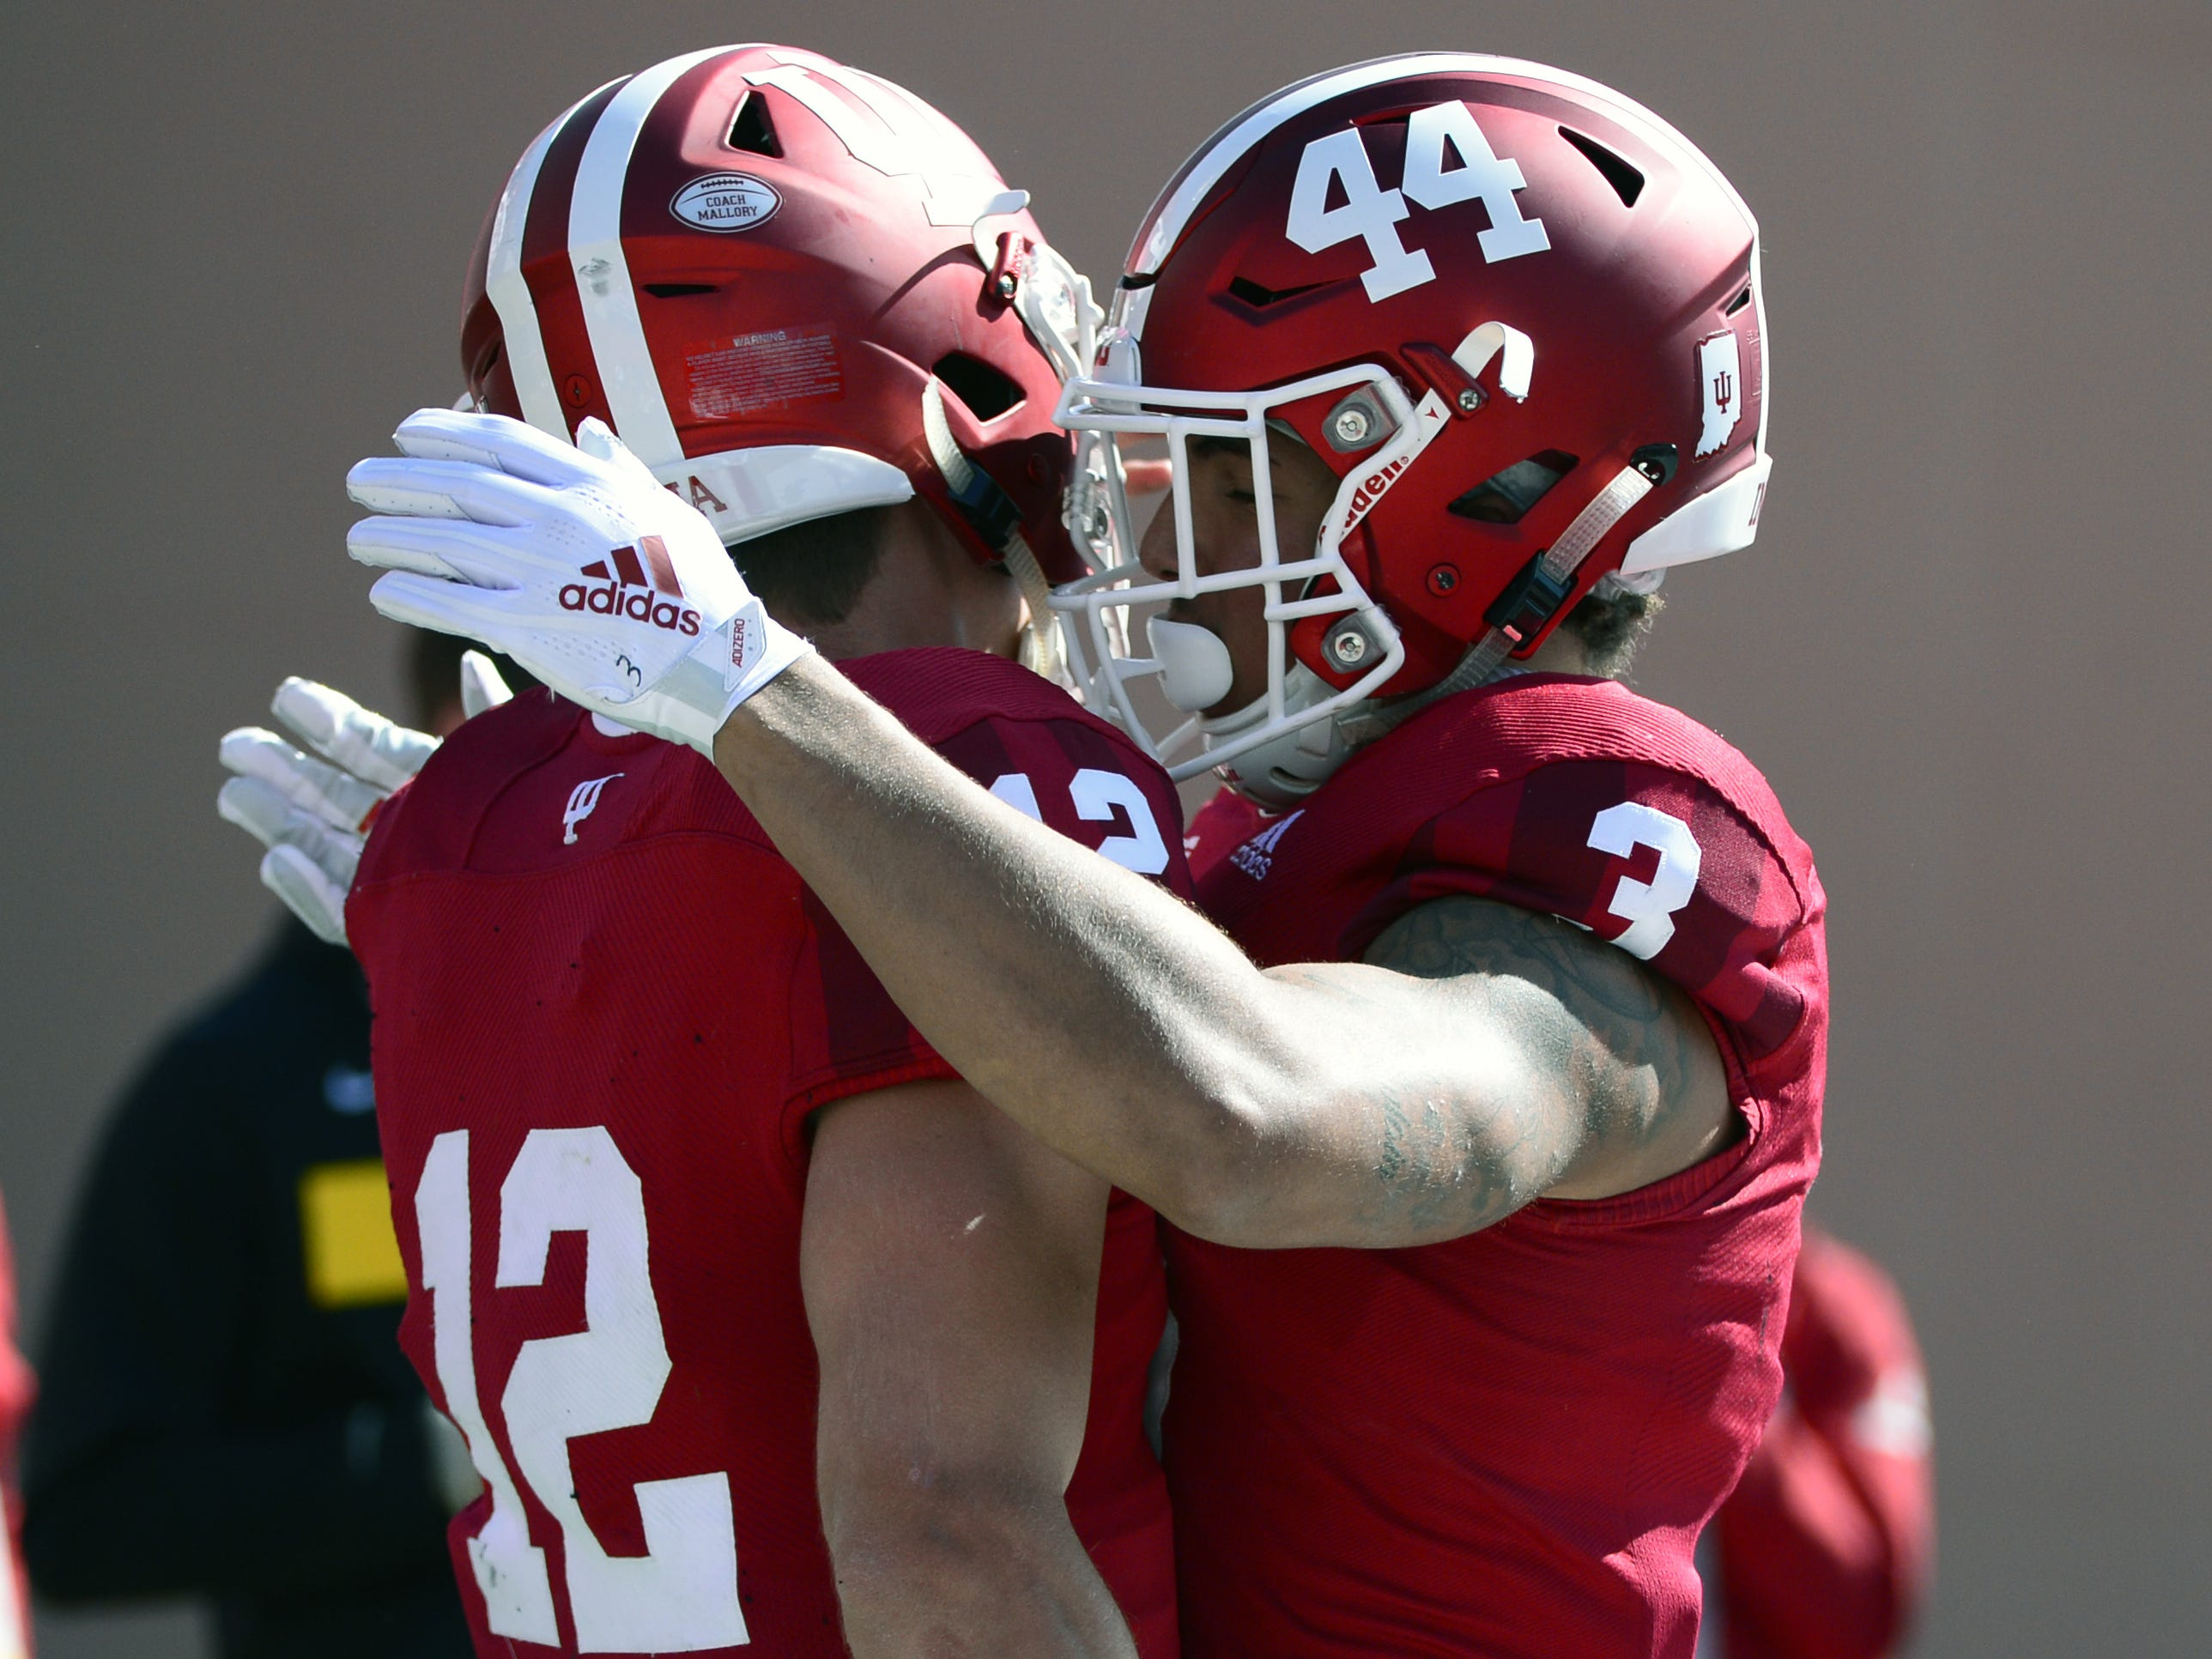 Indiana Hoosiers quarterback Peyton Ramsey (12) celebrates with wide receiver Ty Fryfogle (3) after scoring a touchdown against Iowa at Memorial Stadium in Bloomington, Ind., on Saturday, Oct. 13, 2018.